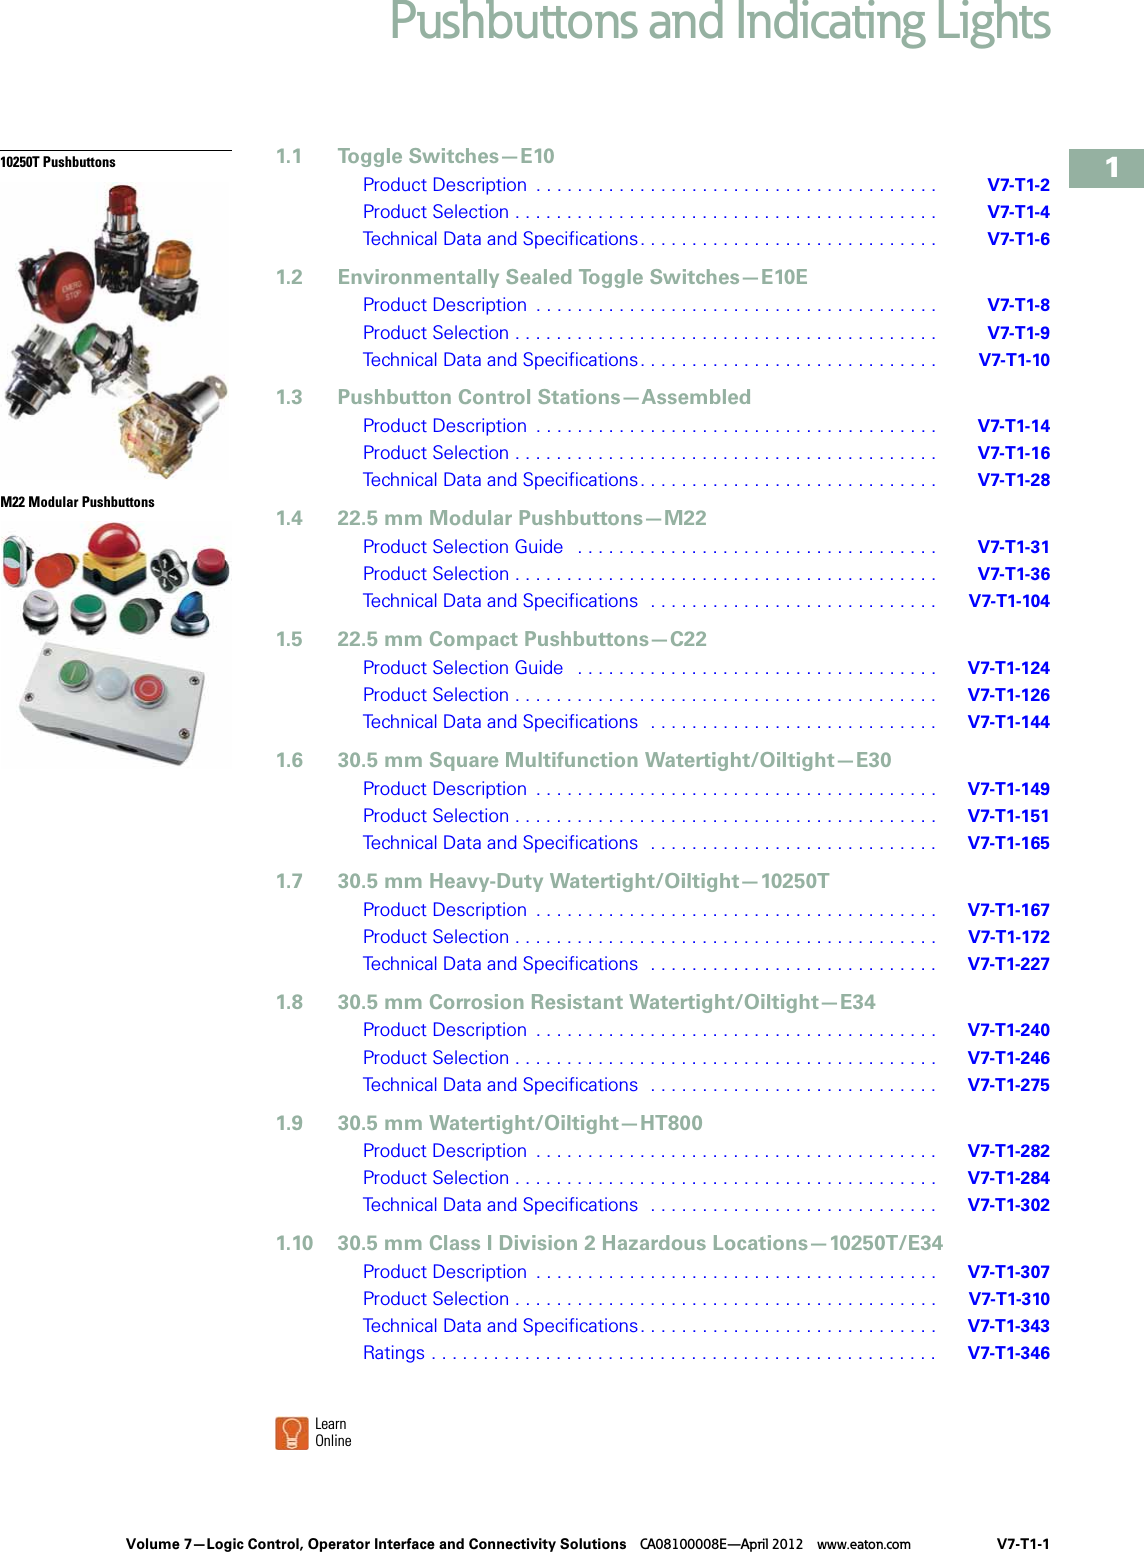 Volume 7 Tab 1 1000460209 Catalog